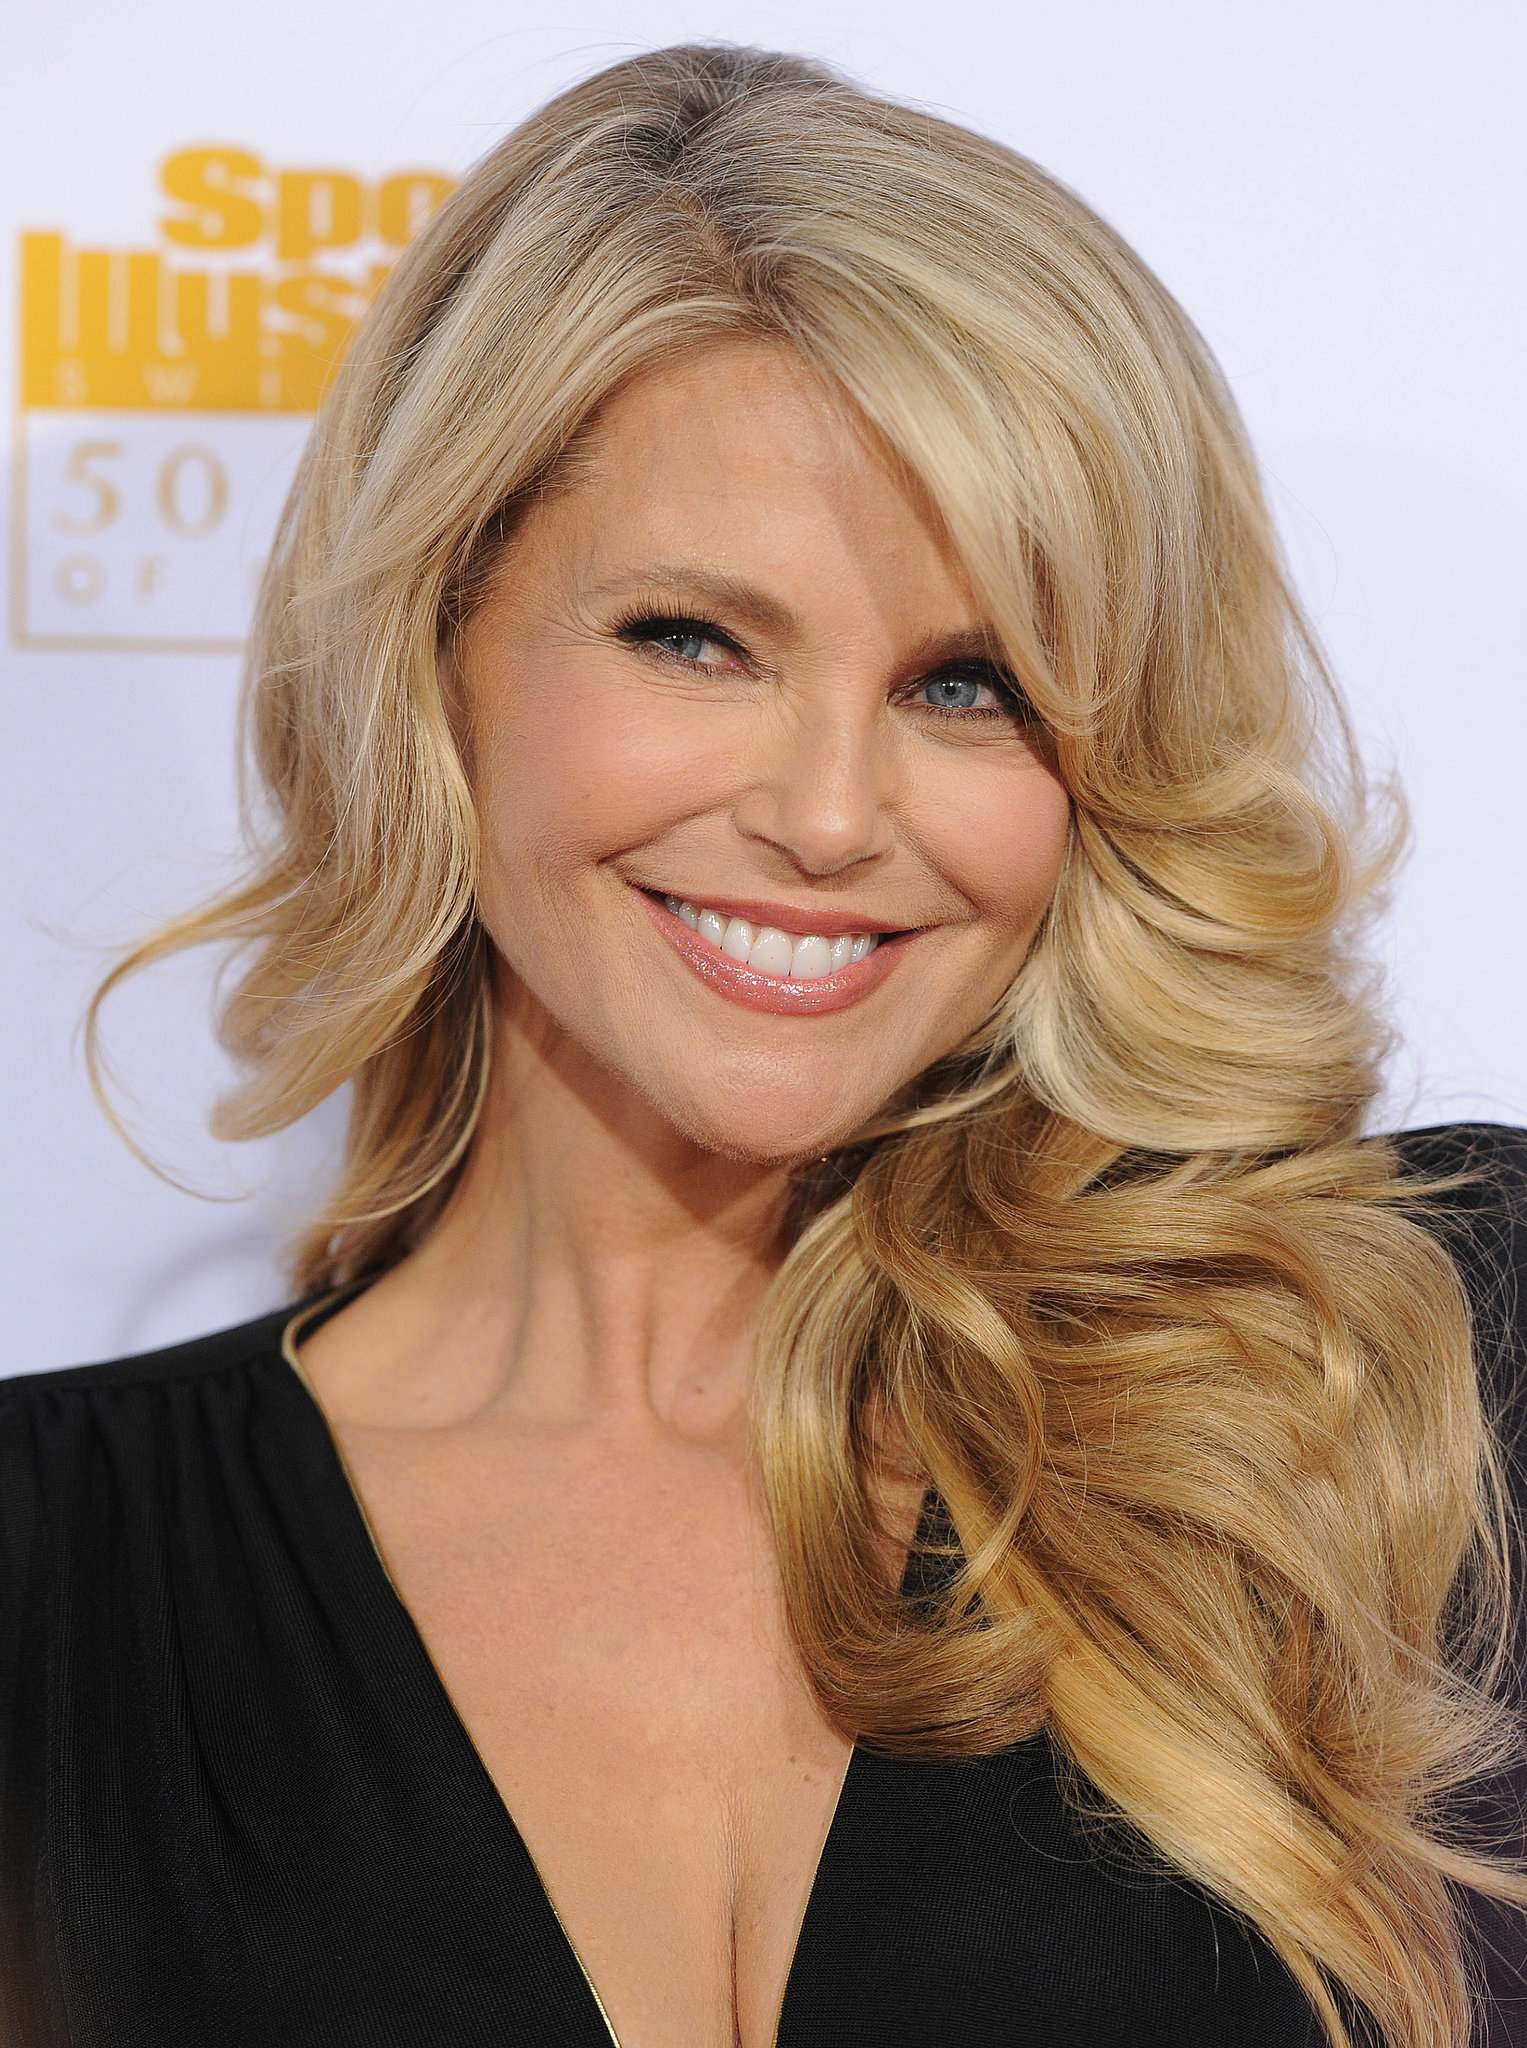 From The Sports Illustrated Swimsuit 50th Anniversary Pink Carpet Celebration On February 17 2014 Christie Brinkley